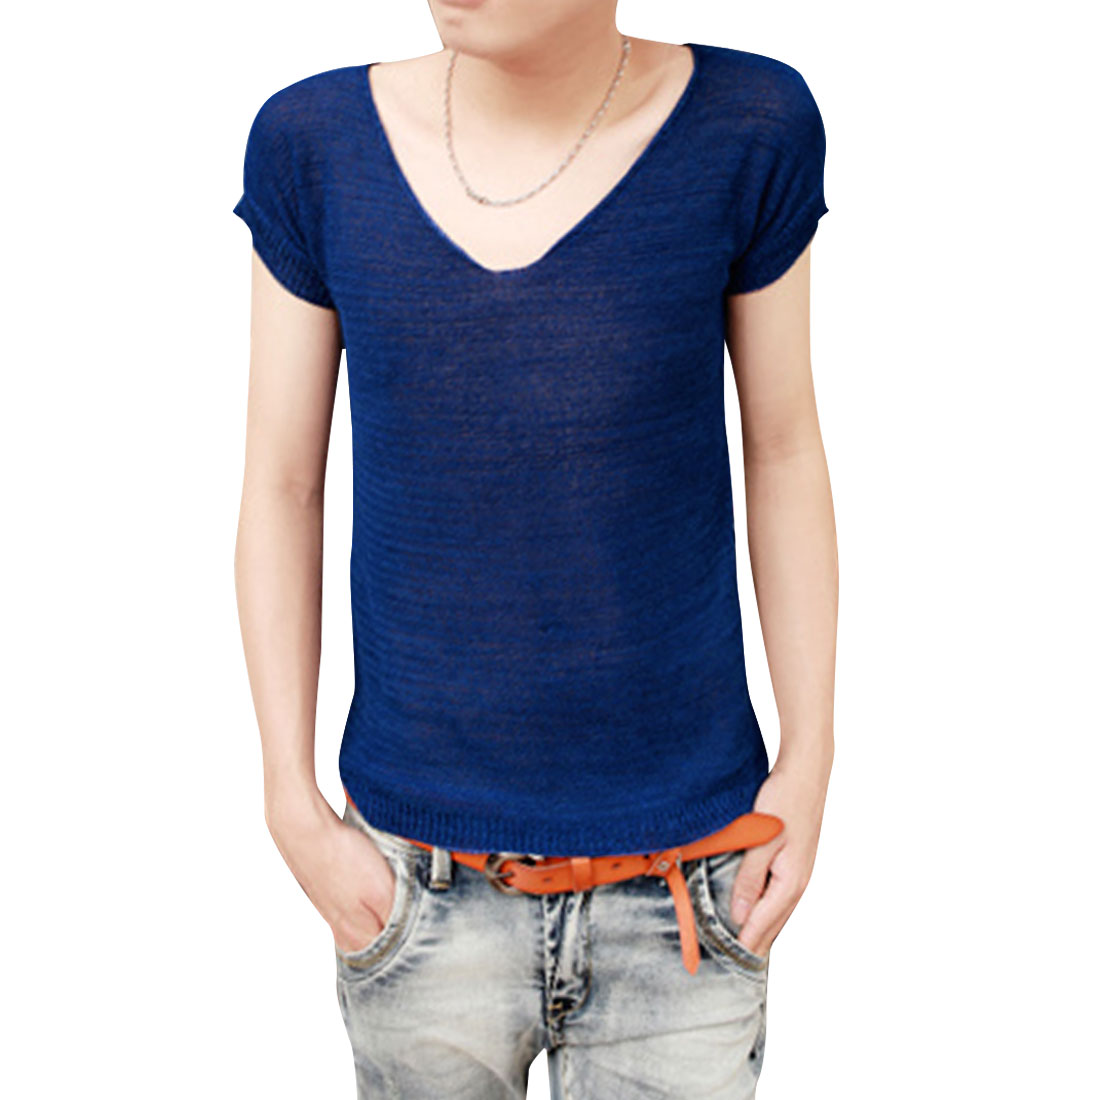 Men V Neck Semi-sheer Elastic Dark Blue Leisure Knit Top S